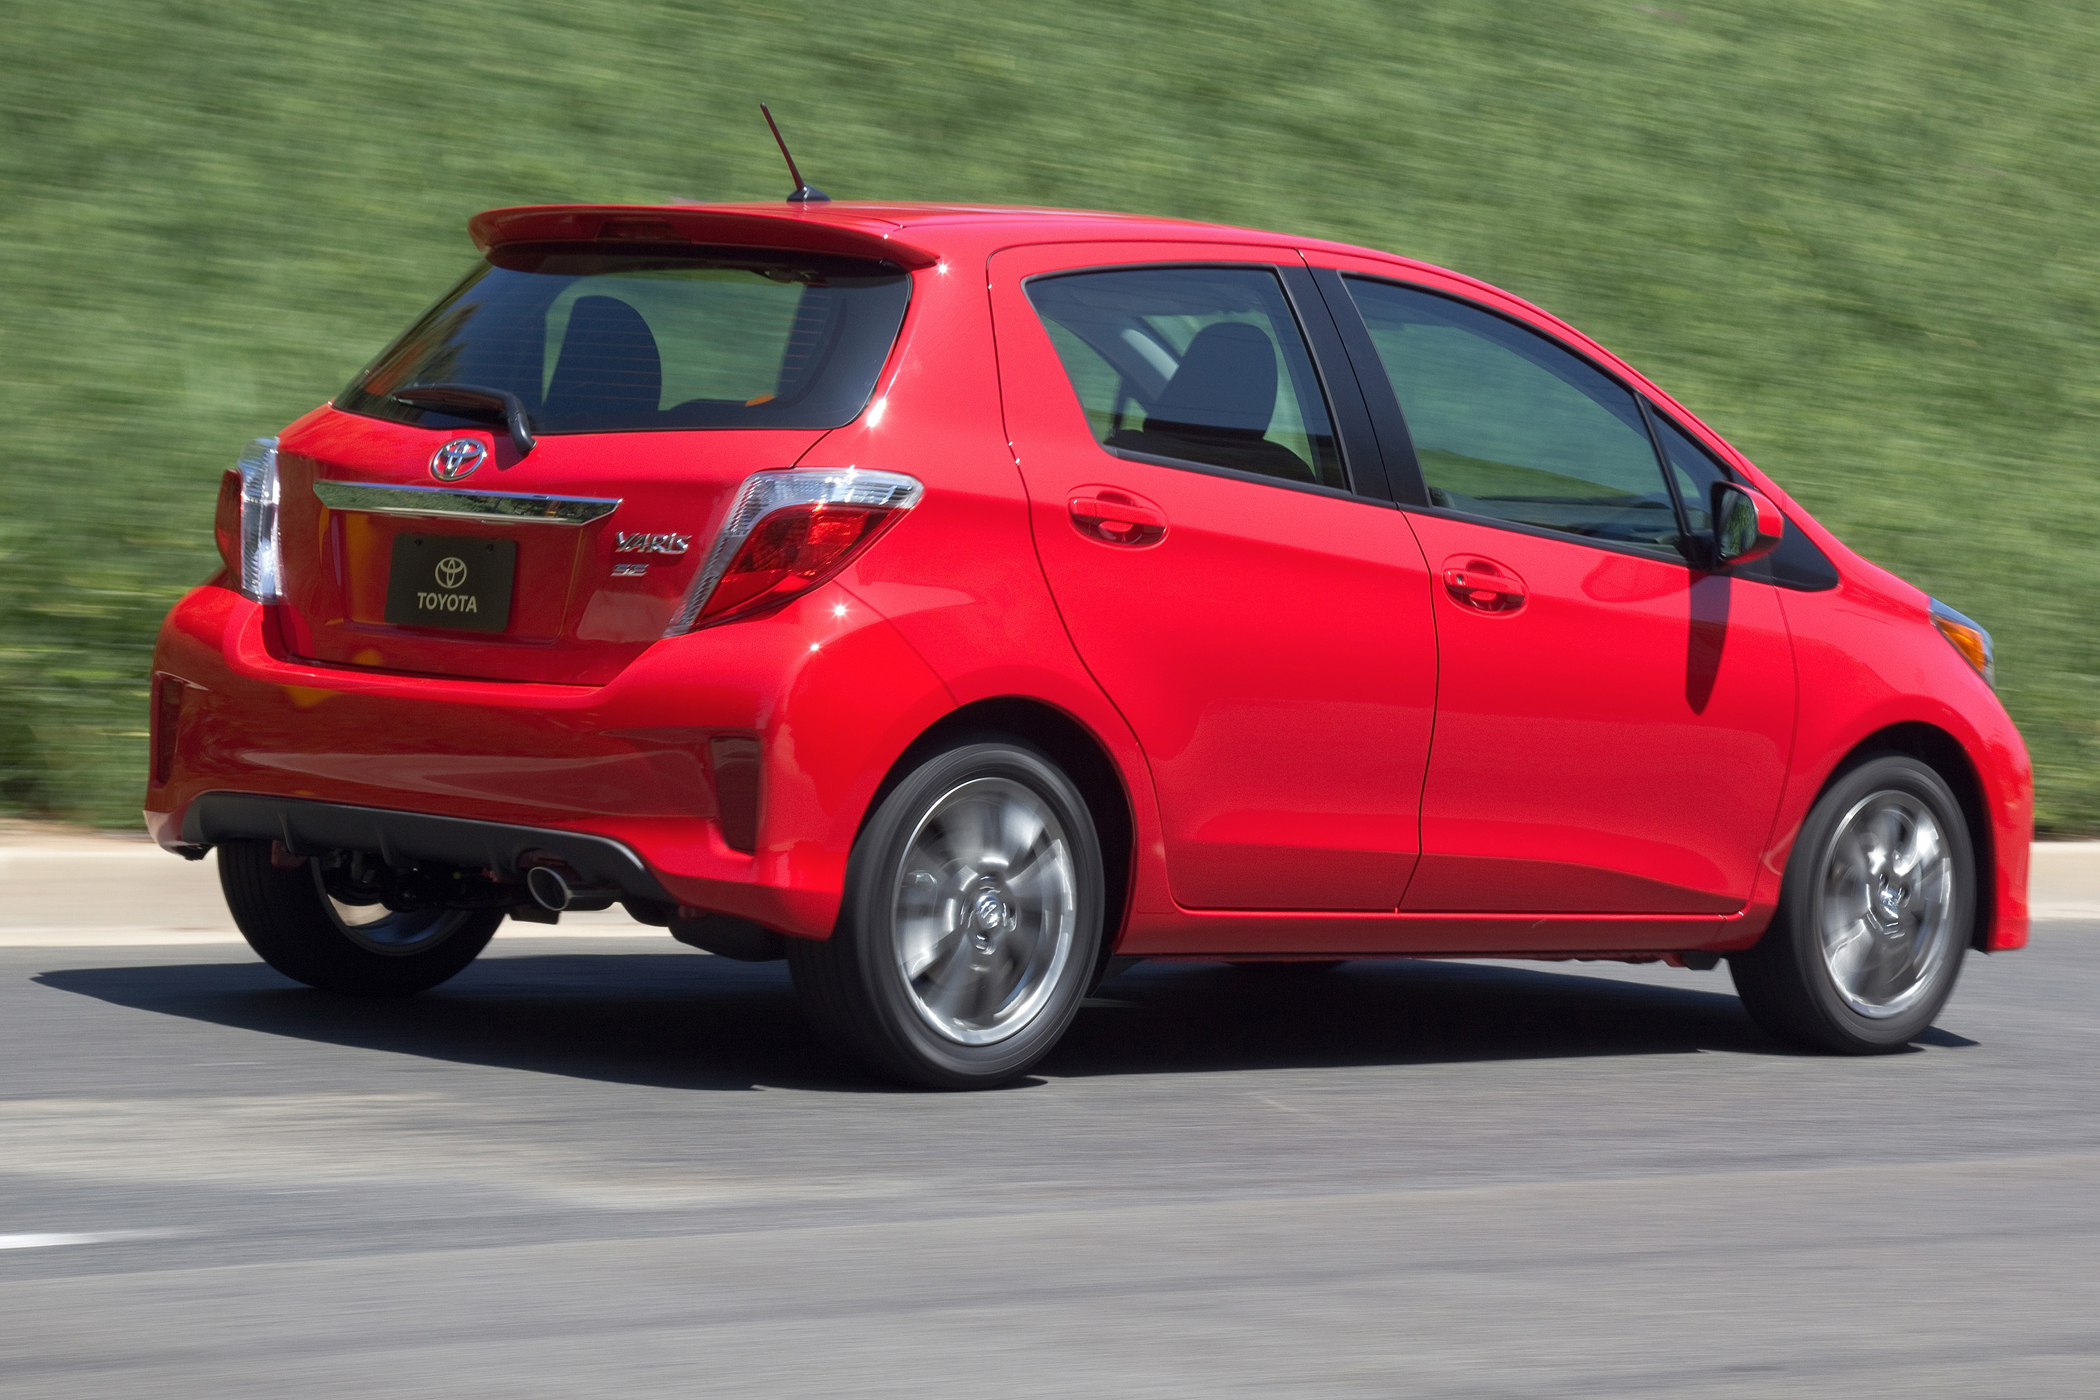 Manufacturer photo: Today, liftback body styles dominate the subcompact vehicle segment, preferred by 70 percent of new retail car buyers in this category